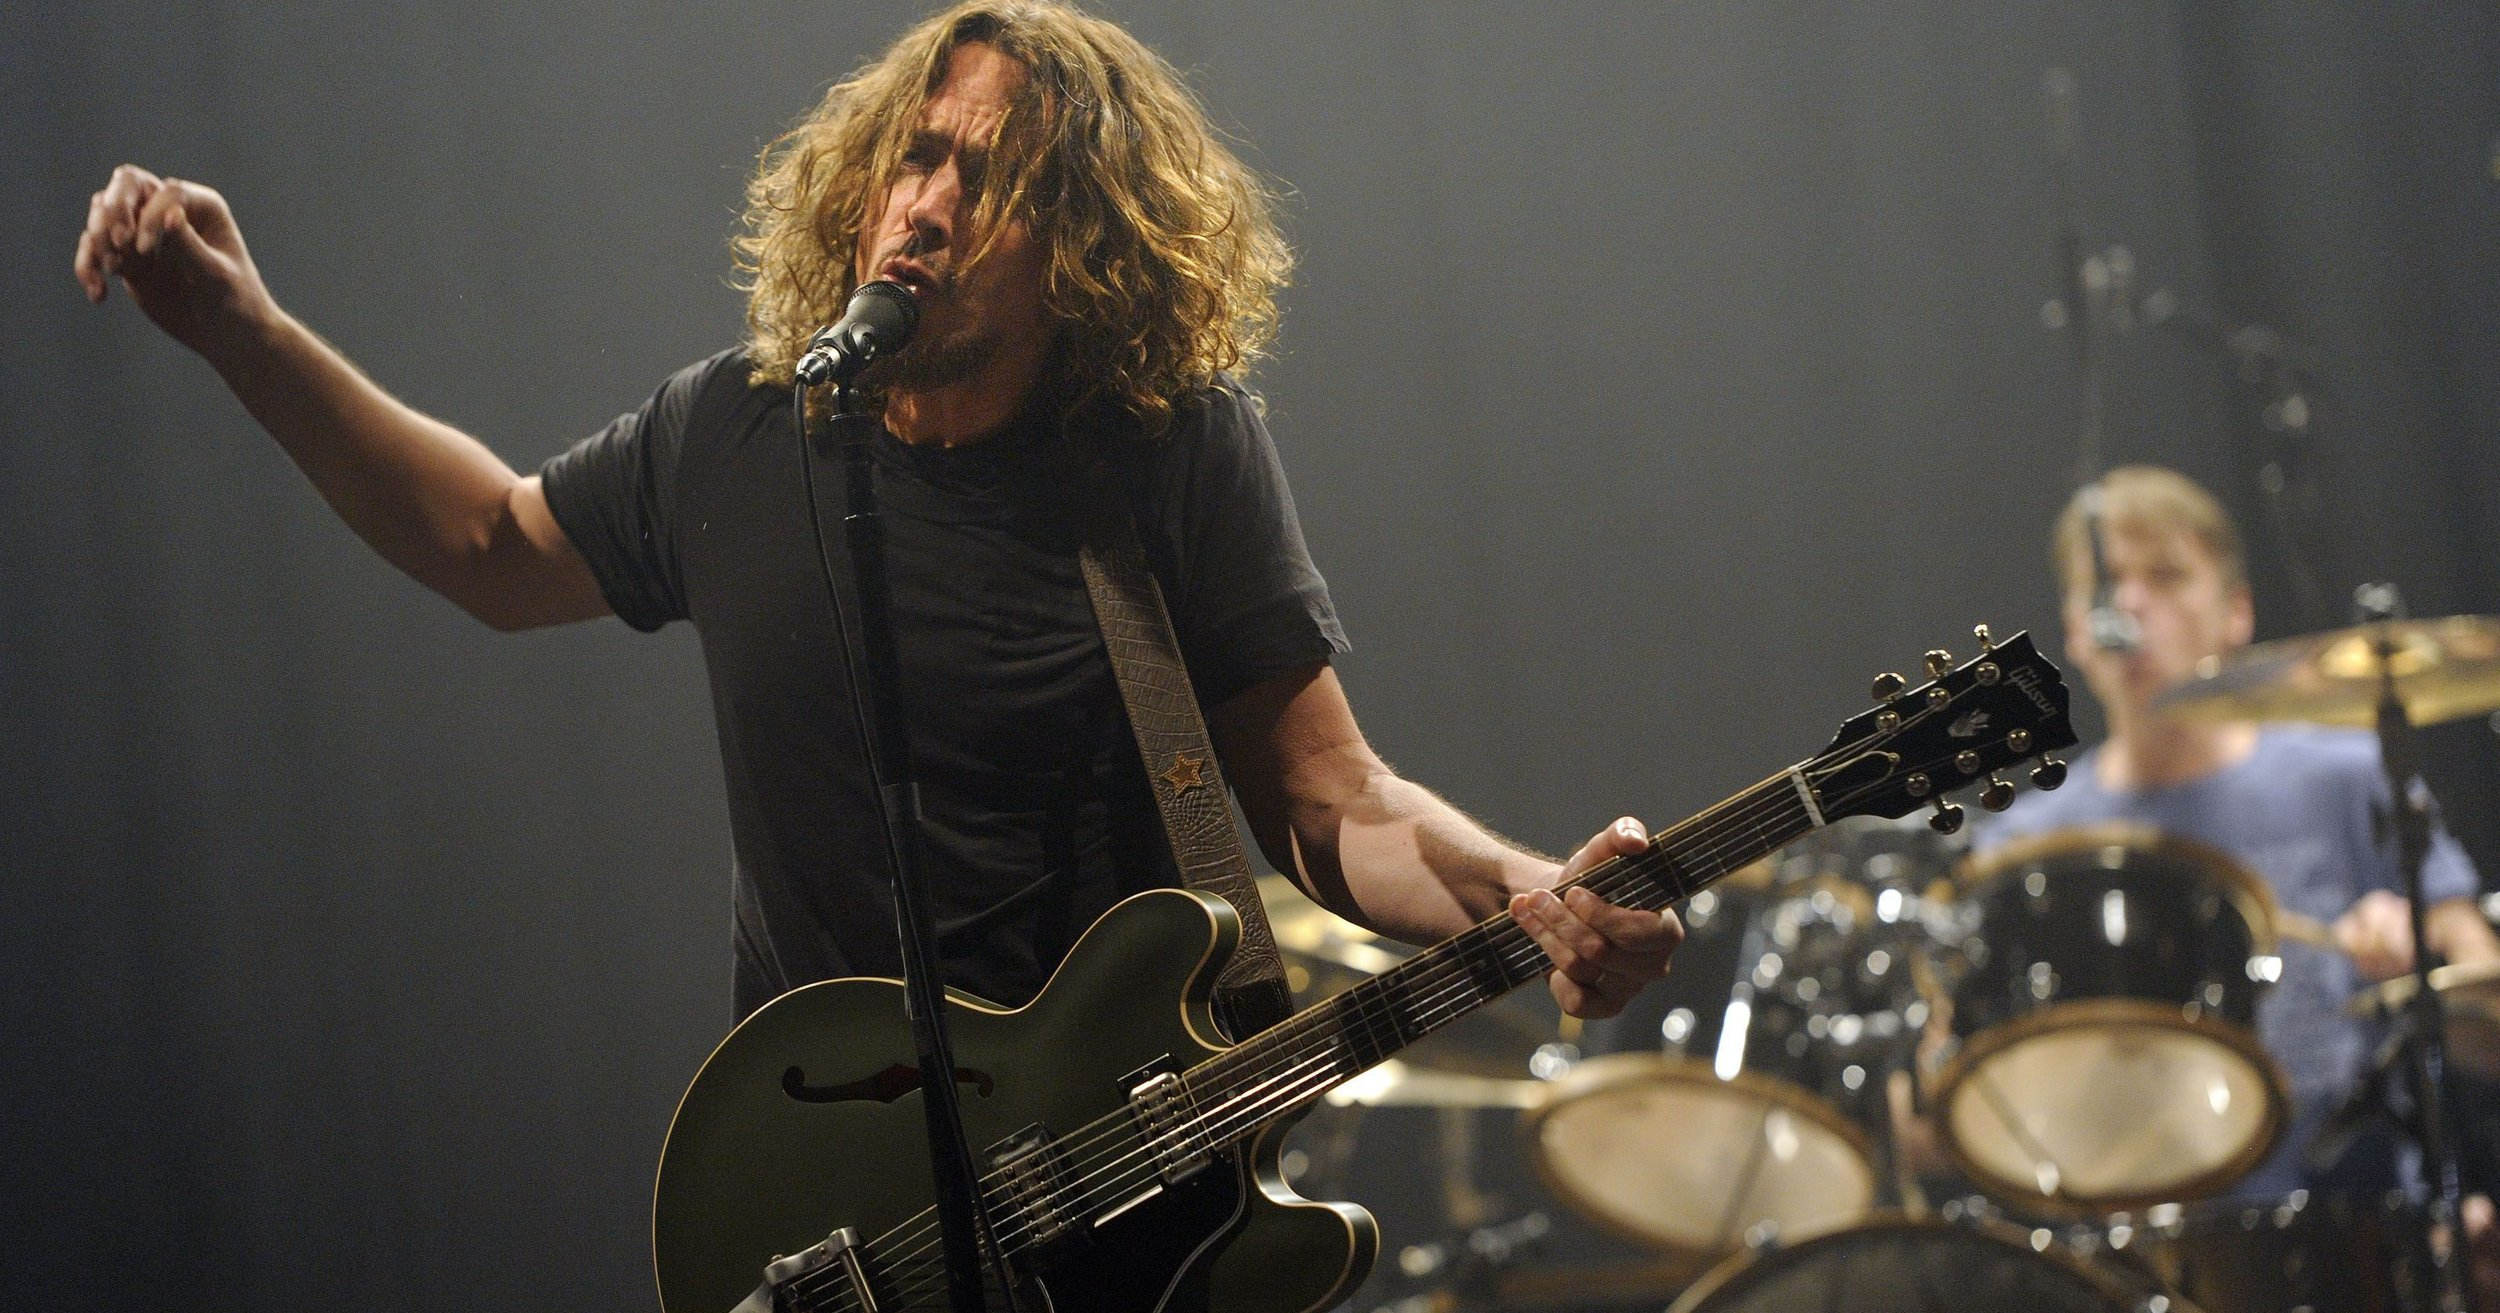 Chris Cornell performs with Soundgarden at a 2013 concert (Photo Credit: Chris Pizzello, Invision/AP)